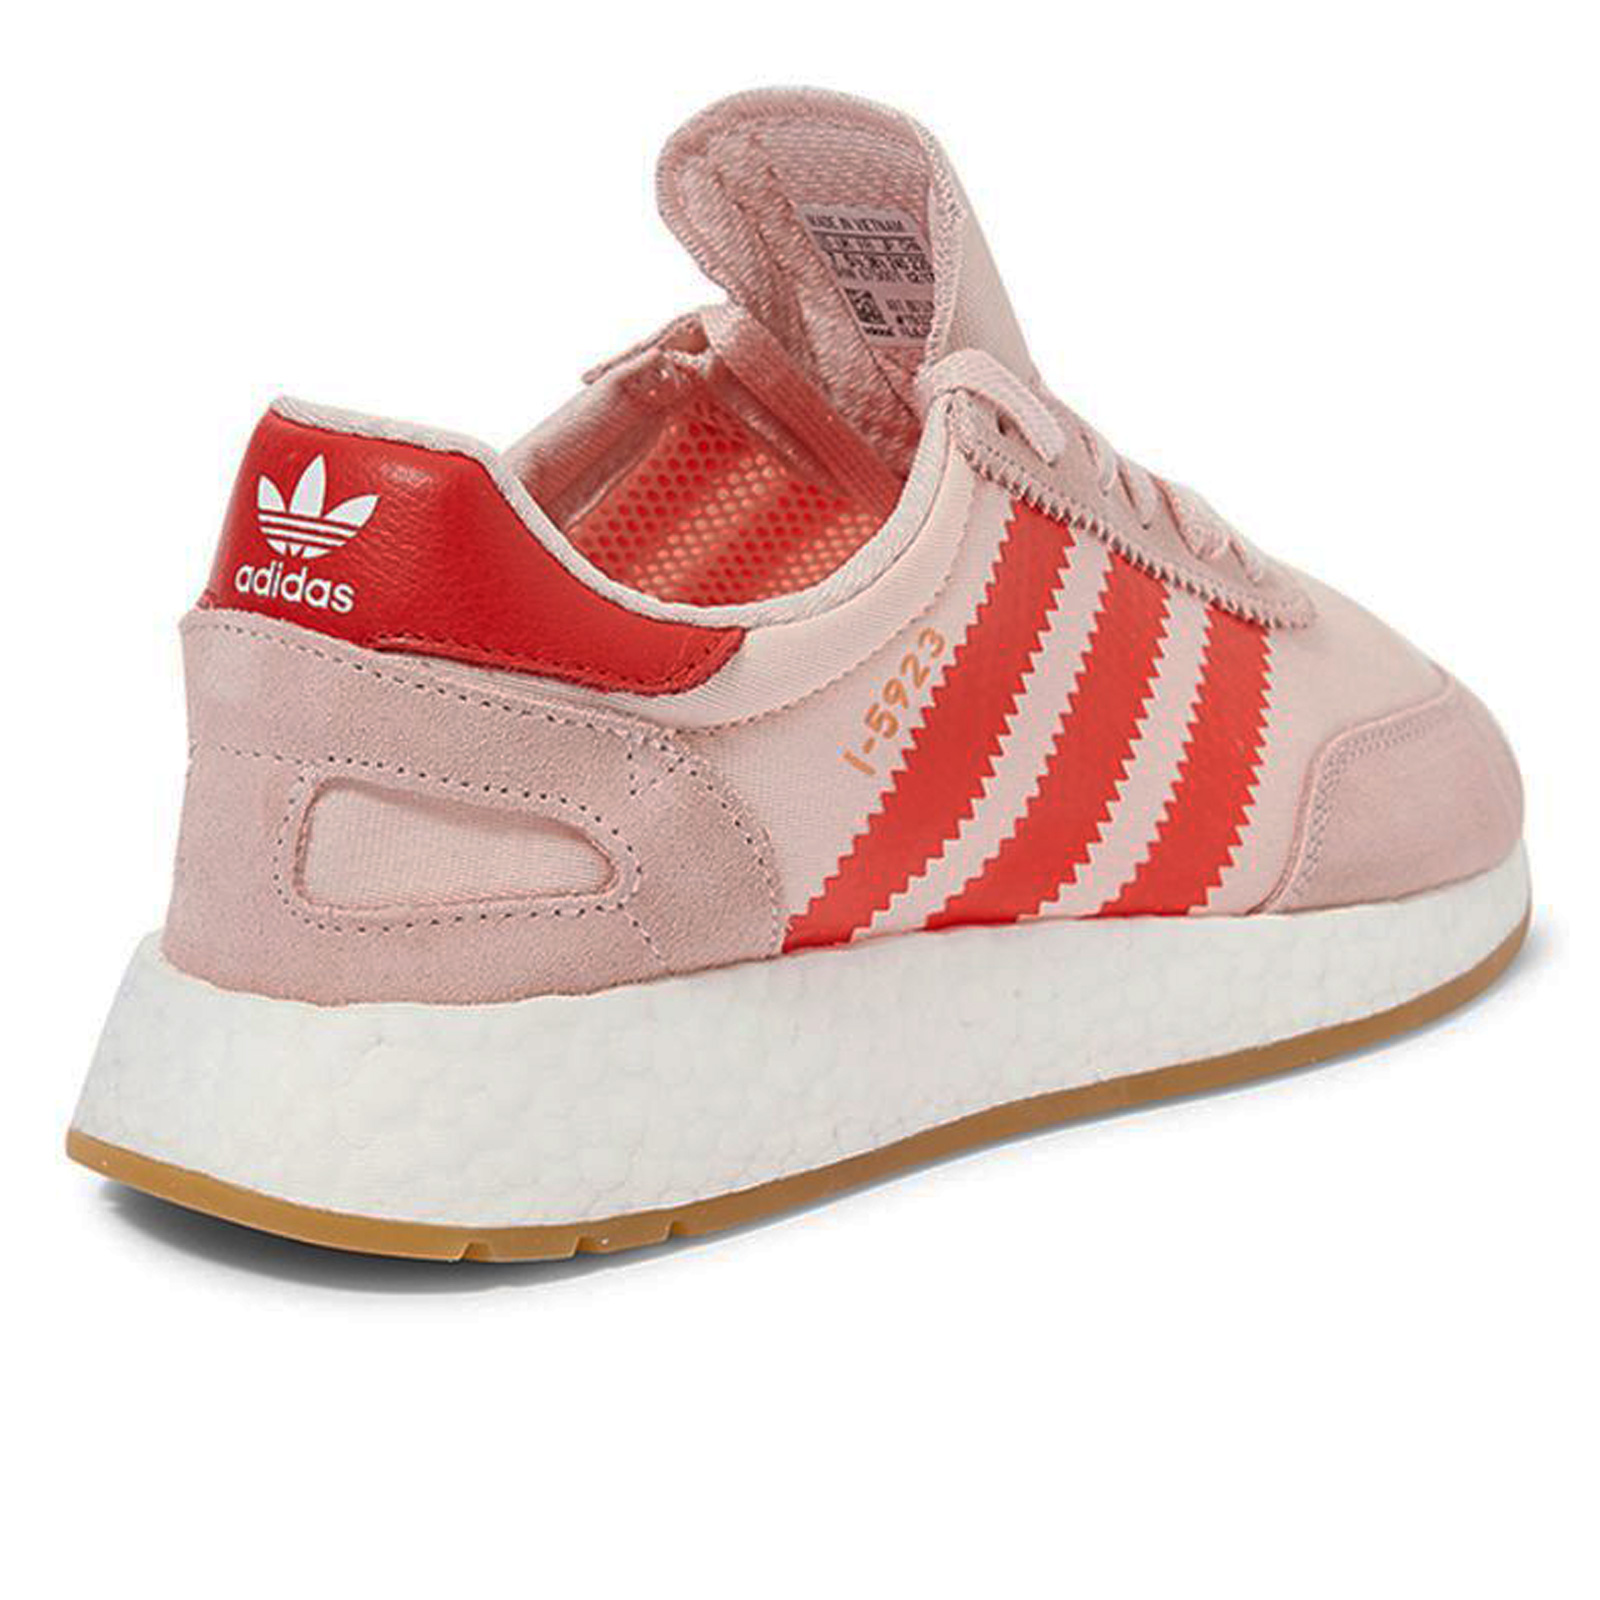 Details about Adidas iniki Runner I-5923 Womens Sneakers Trainers Shoes  Icepink Pink BB7578- show original title